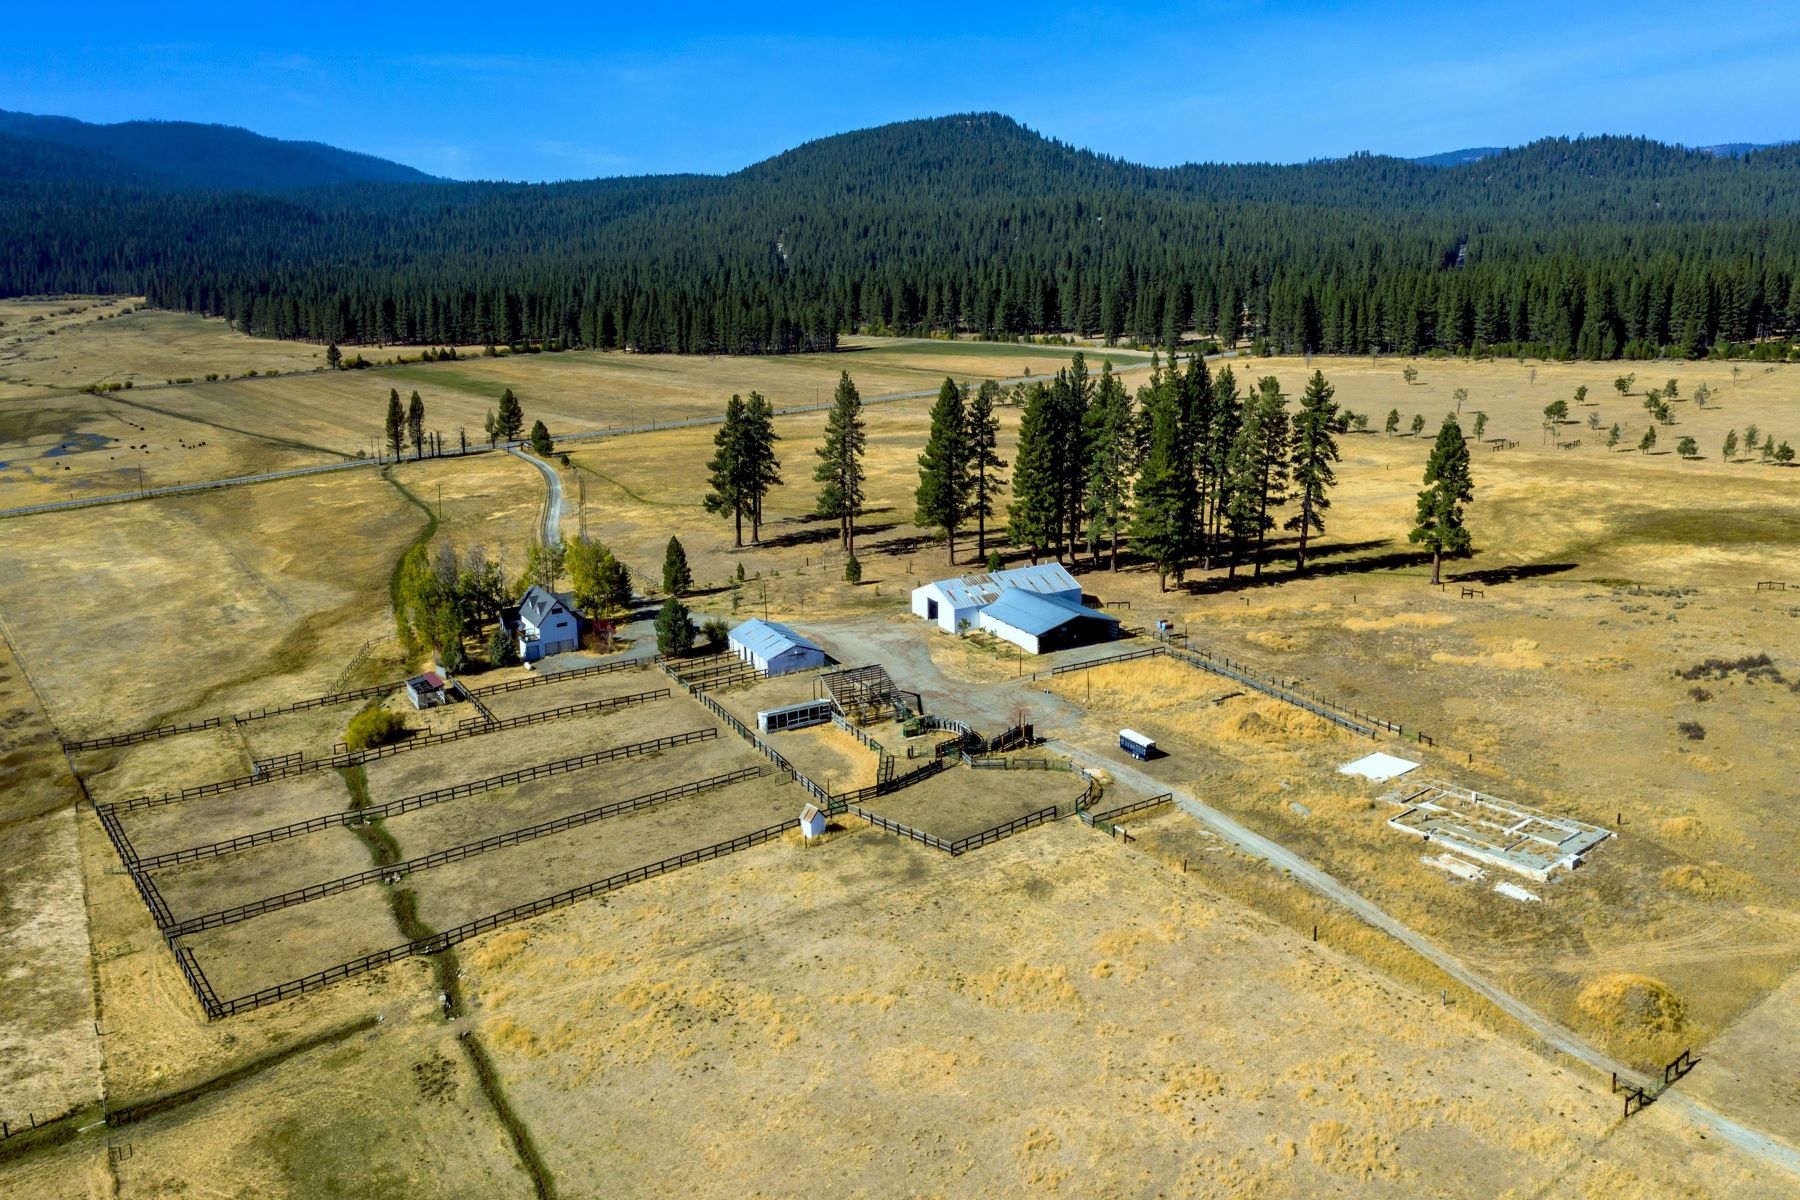 Property for Active at Sierra Valley Splendor on 532 Acres 22440 Highway 89 Calpine, California 96126 United States